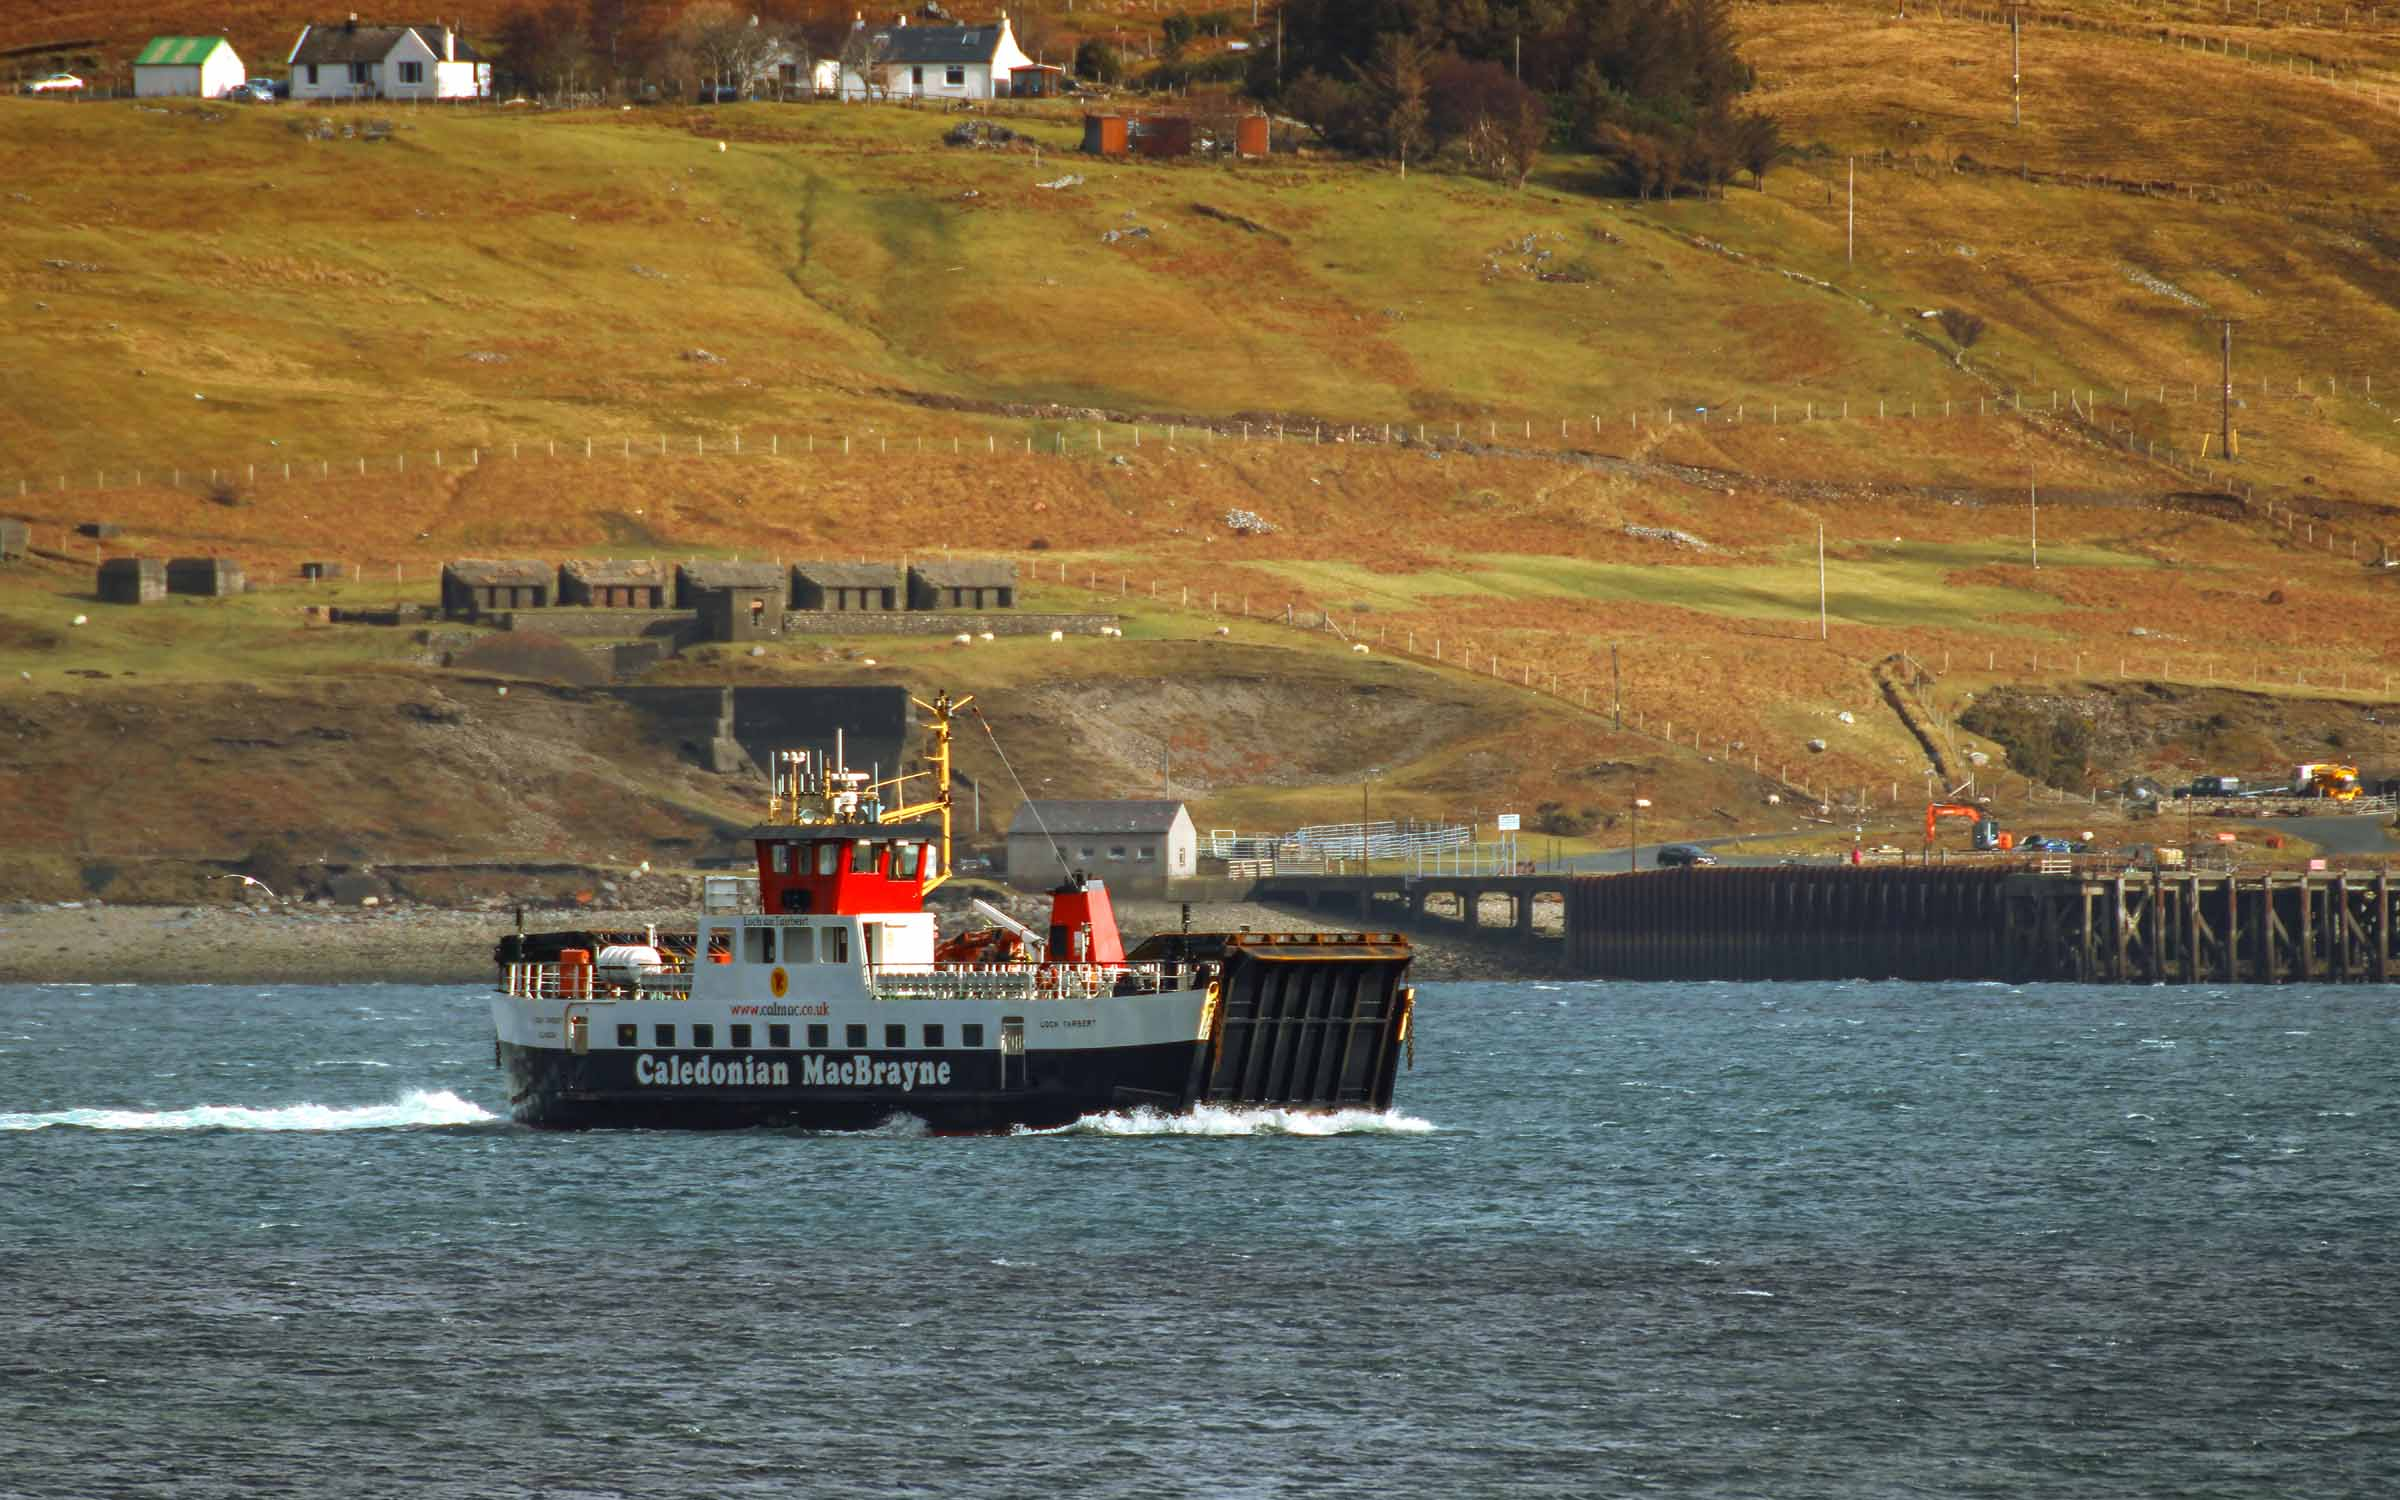 Loch Tarbert crossing to Sconser (Ships of CalMac)